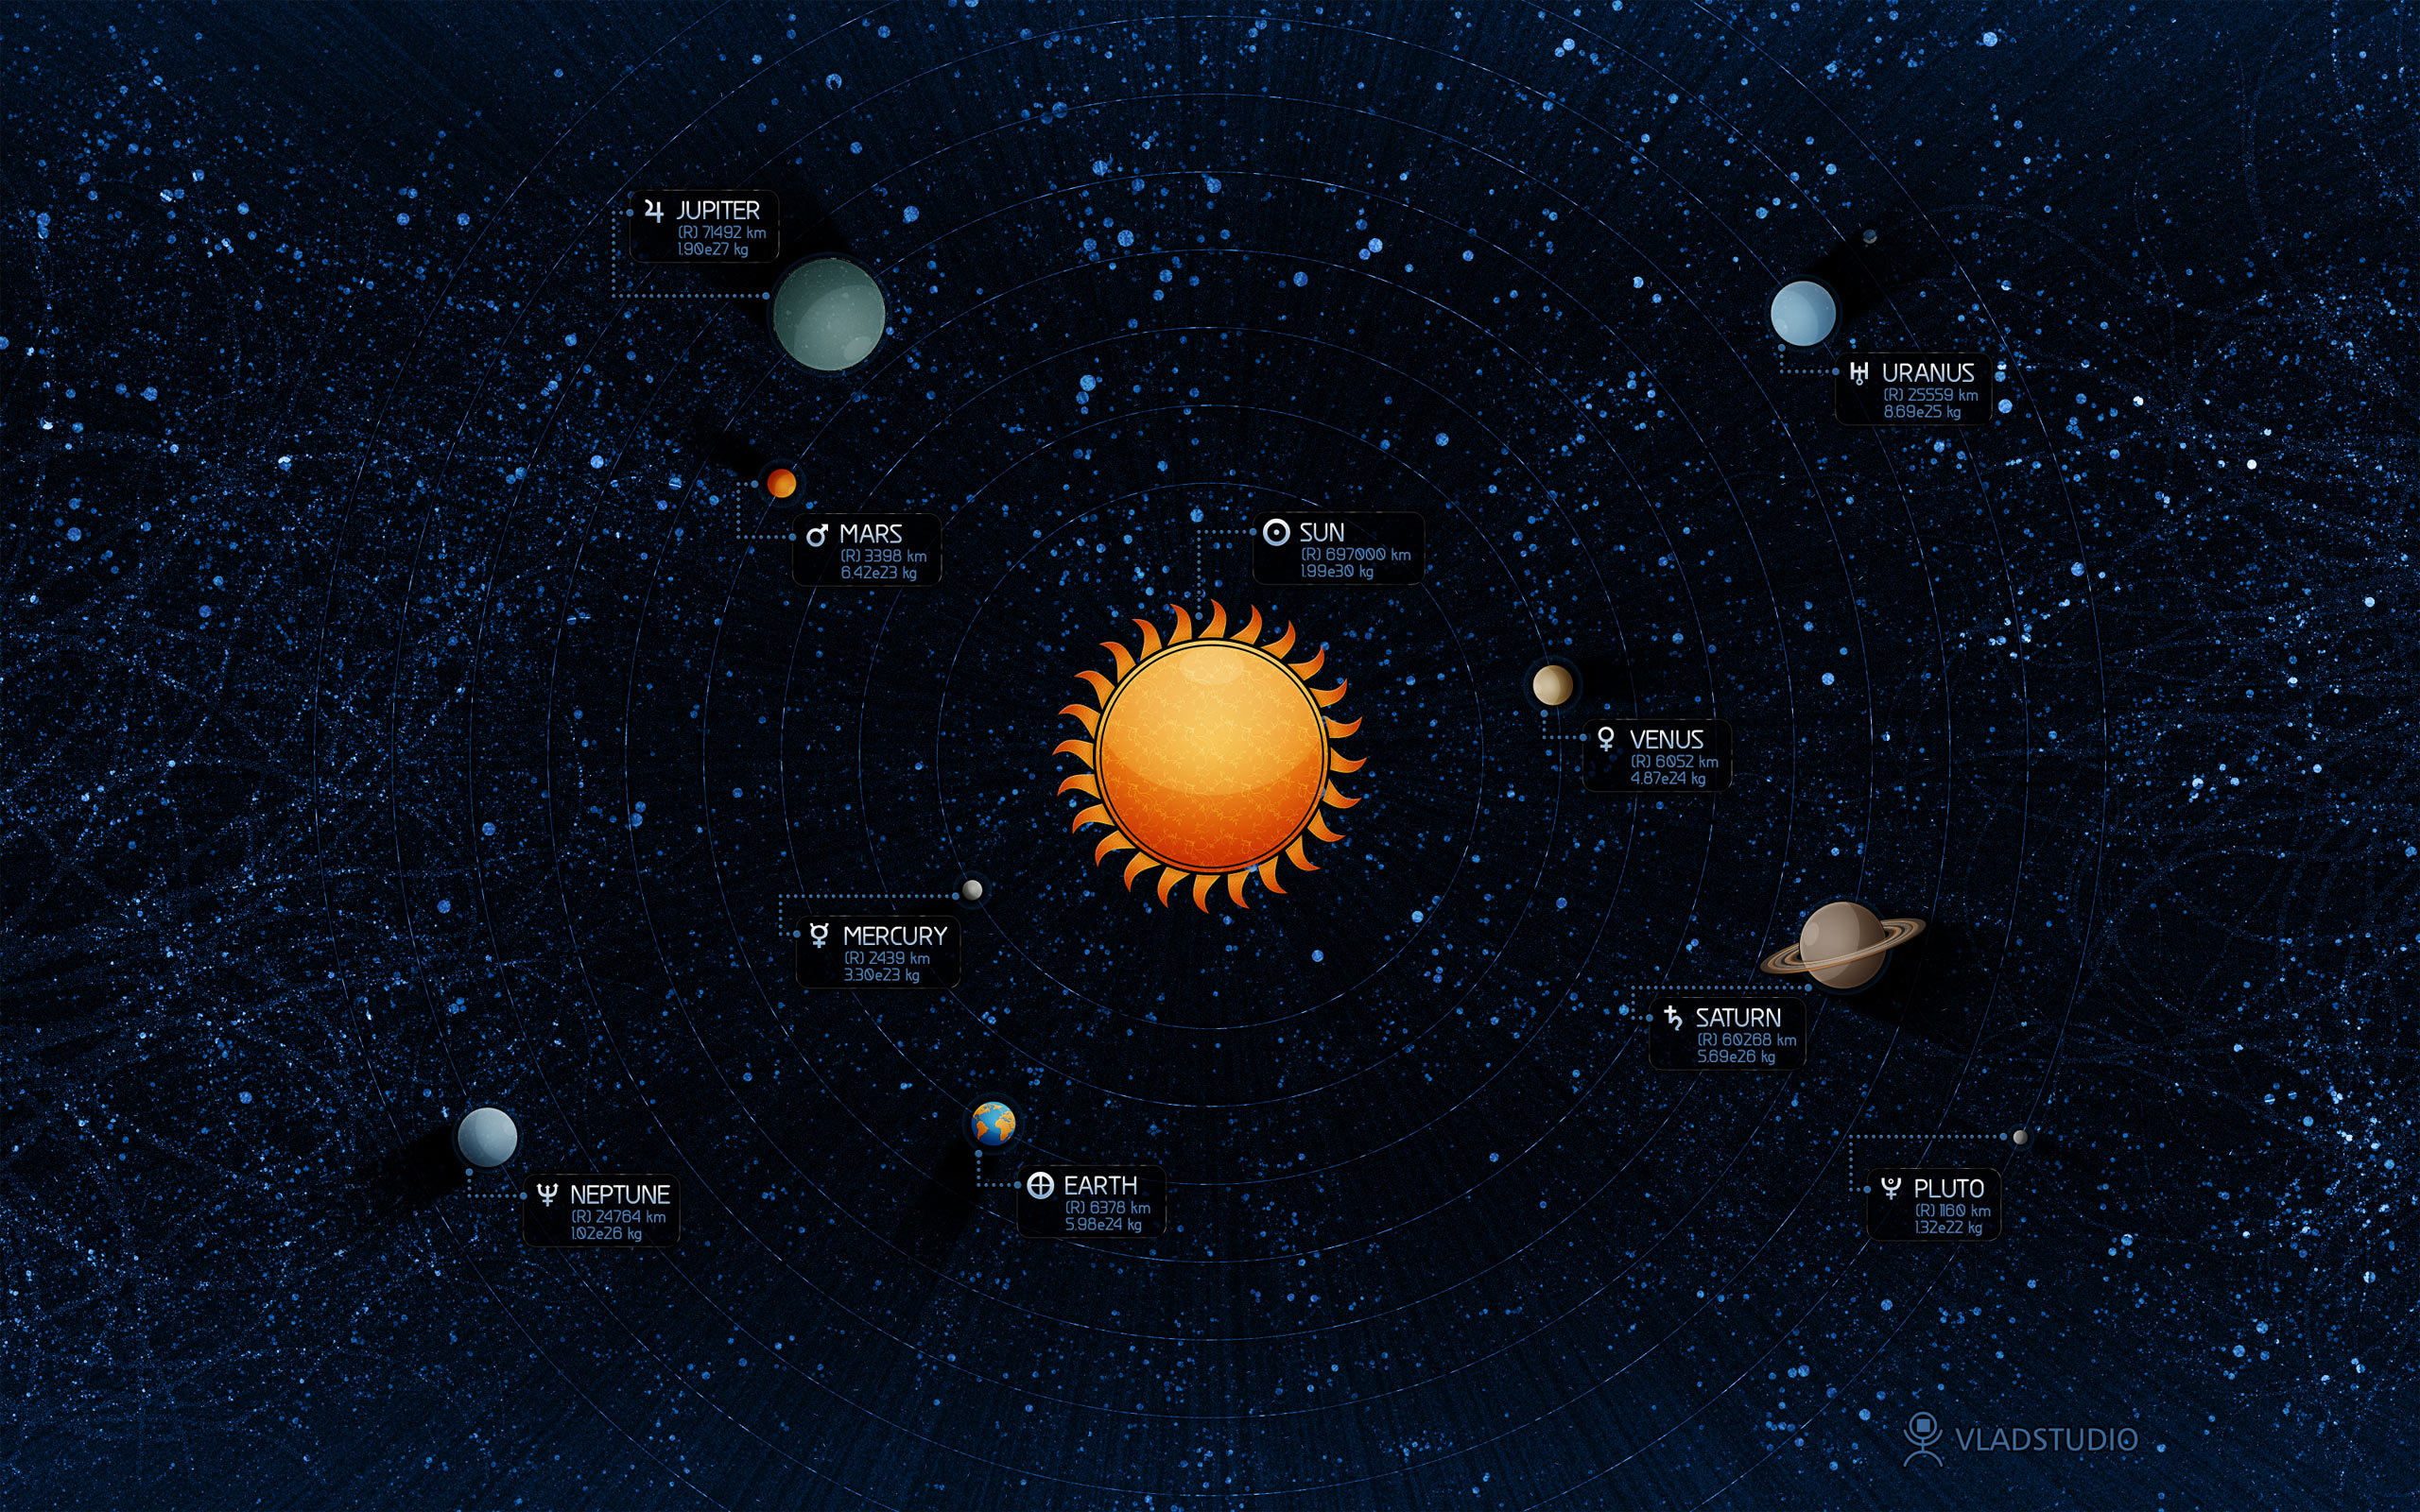 Wallpapers Solar system, Planets, Earth, Mercury, Venus, Mars